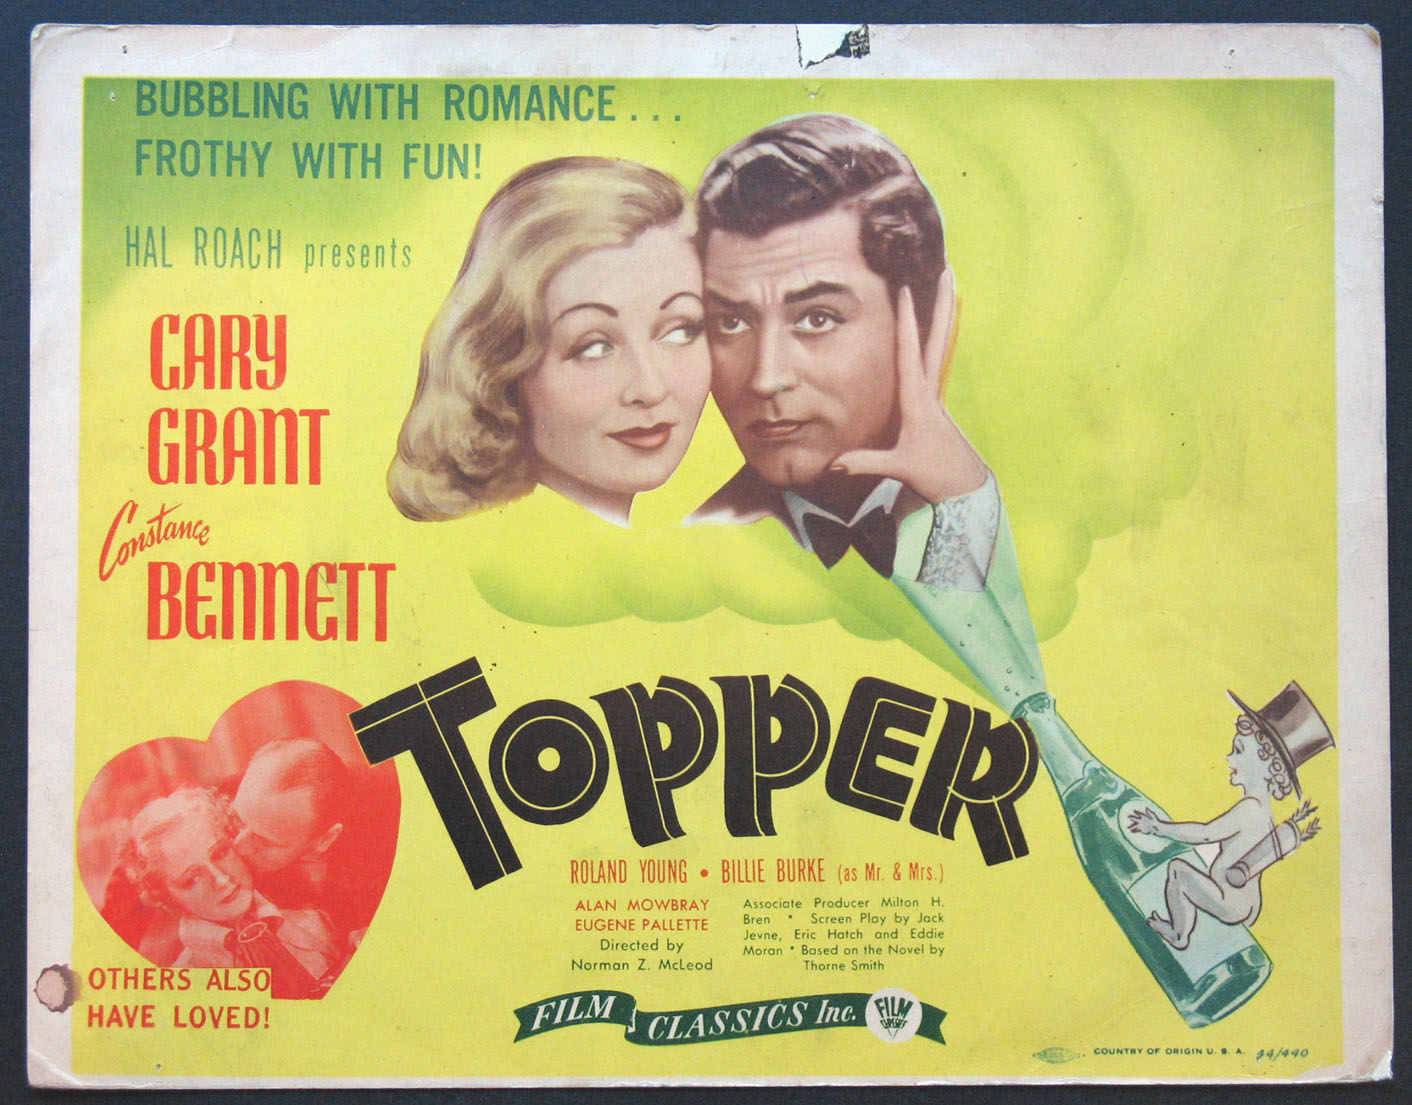 TOPPER @ FilmPosters.com